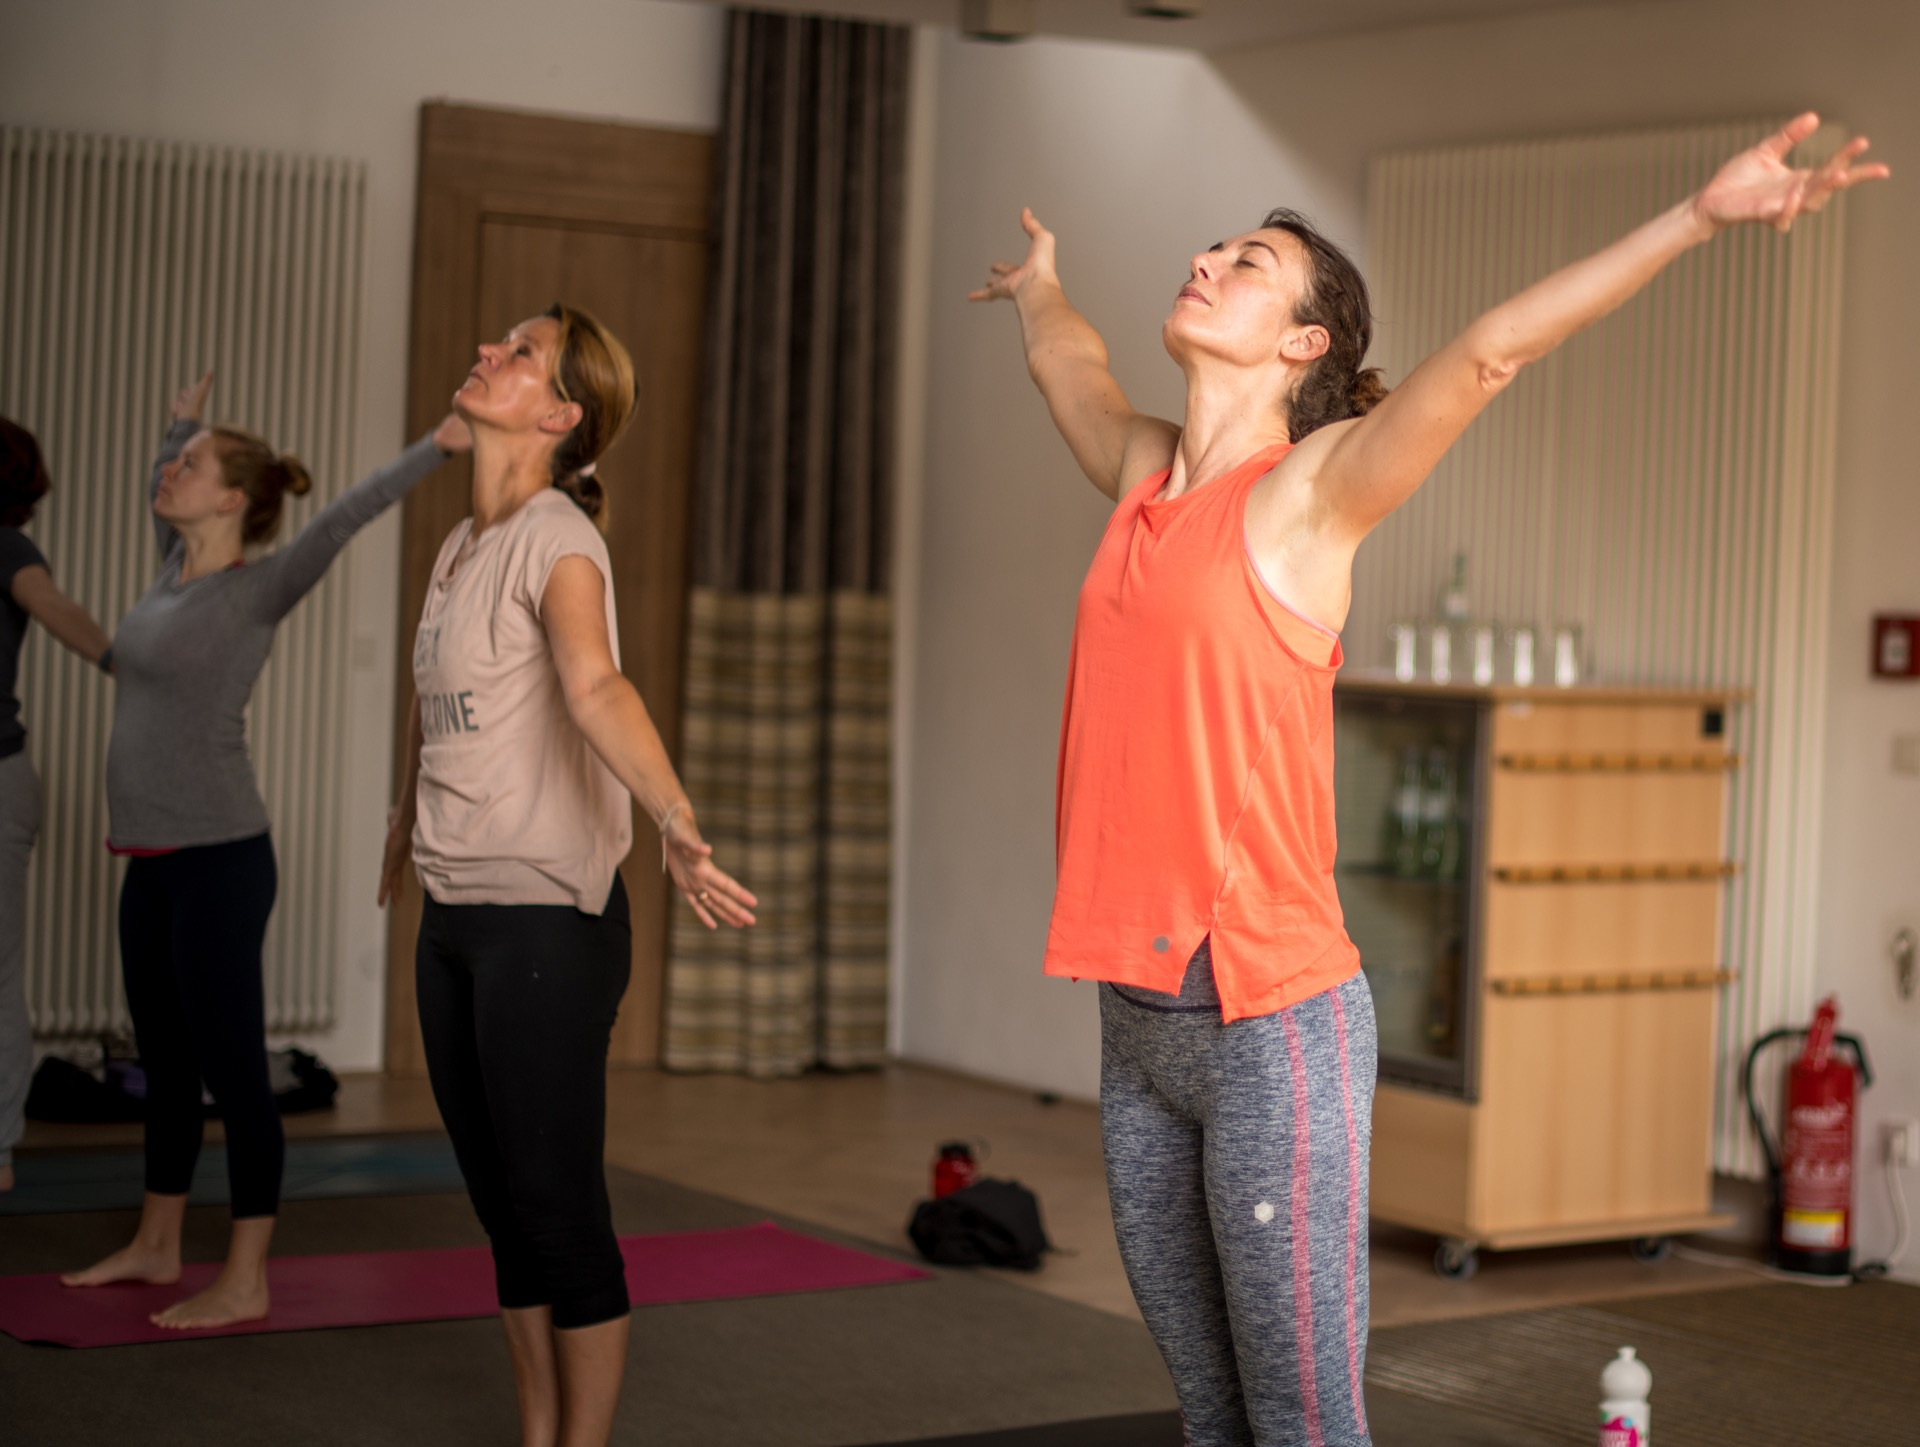 Hie-Kim-Friends-2019-Yoga-Retreat-Alina-Matis-Photography-077 - Hie Kim Yoga - Yoga Retreat - Yoga Workshops und Reisen